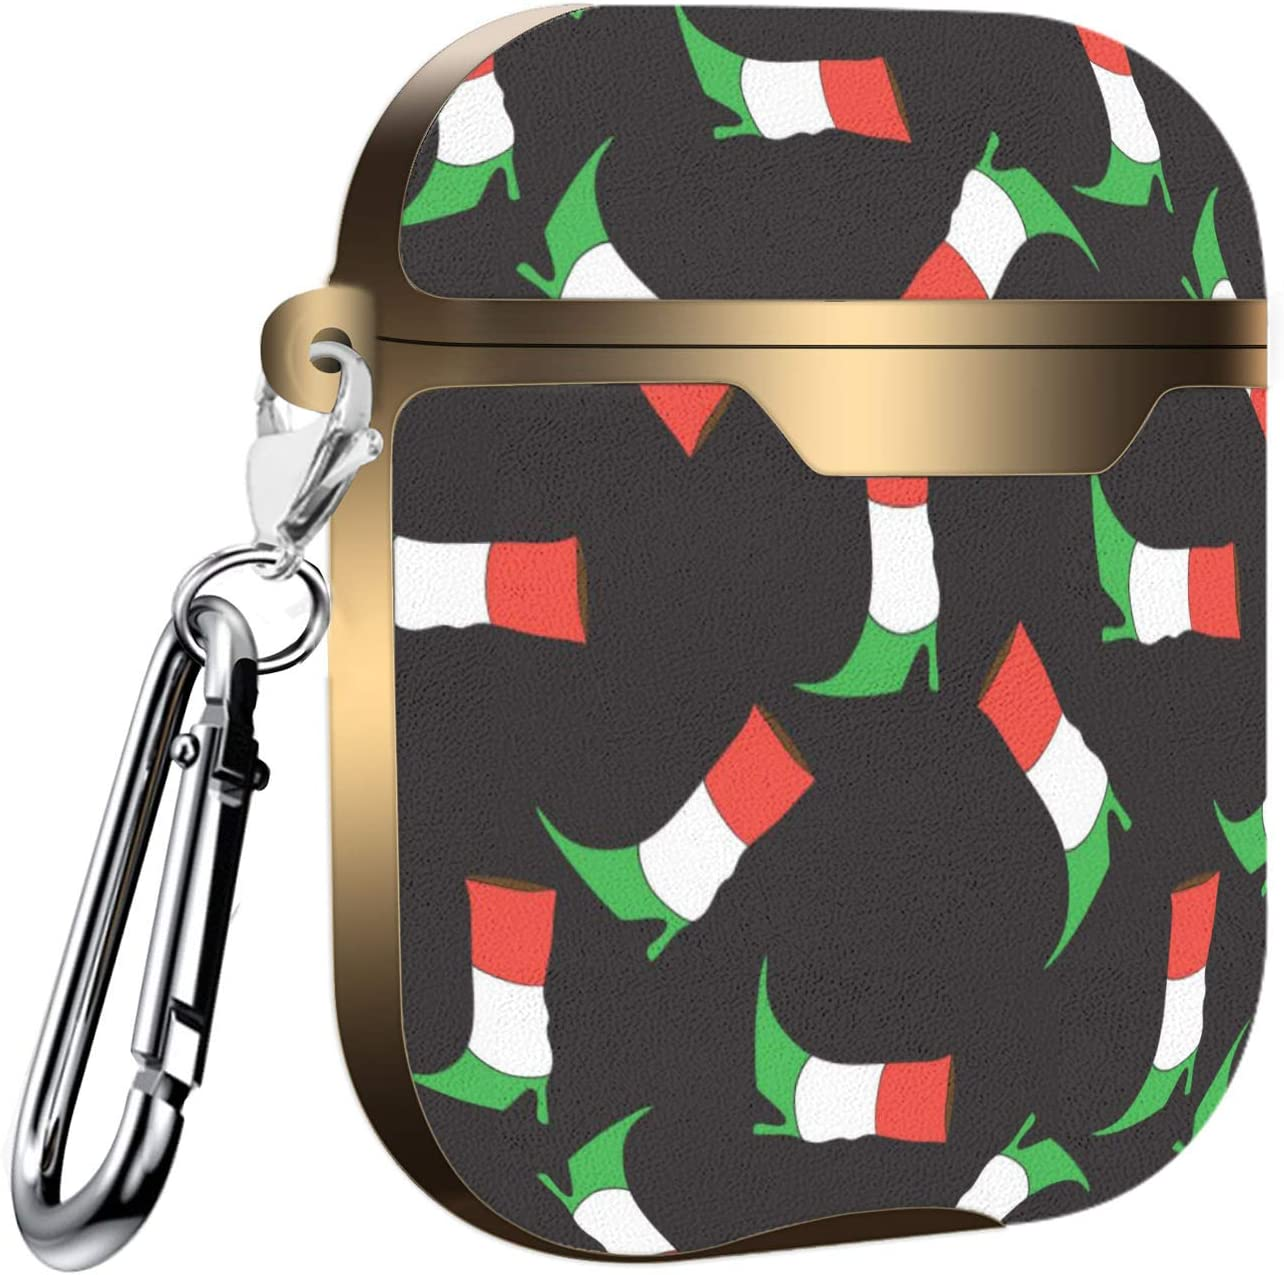 Doodle Italian Flag Colors Boot Slim Form Fitted Printing Pattern Cover Case with Carabiner Compatible with Airpods 1 and AirPods 2